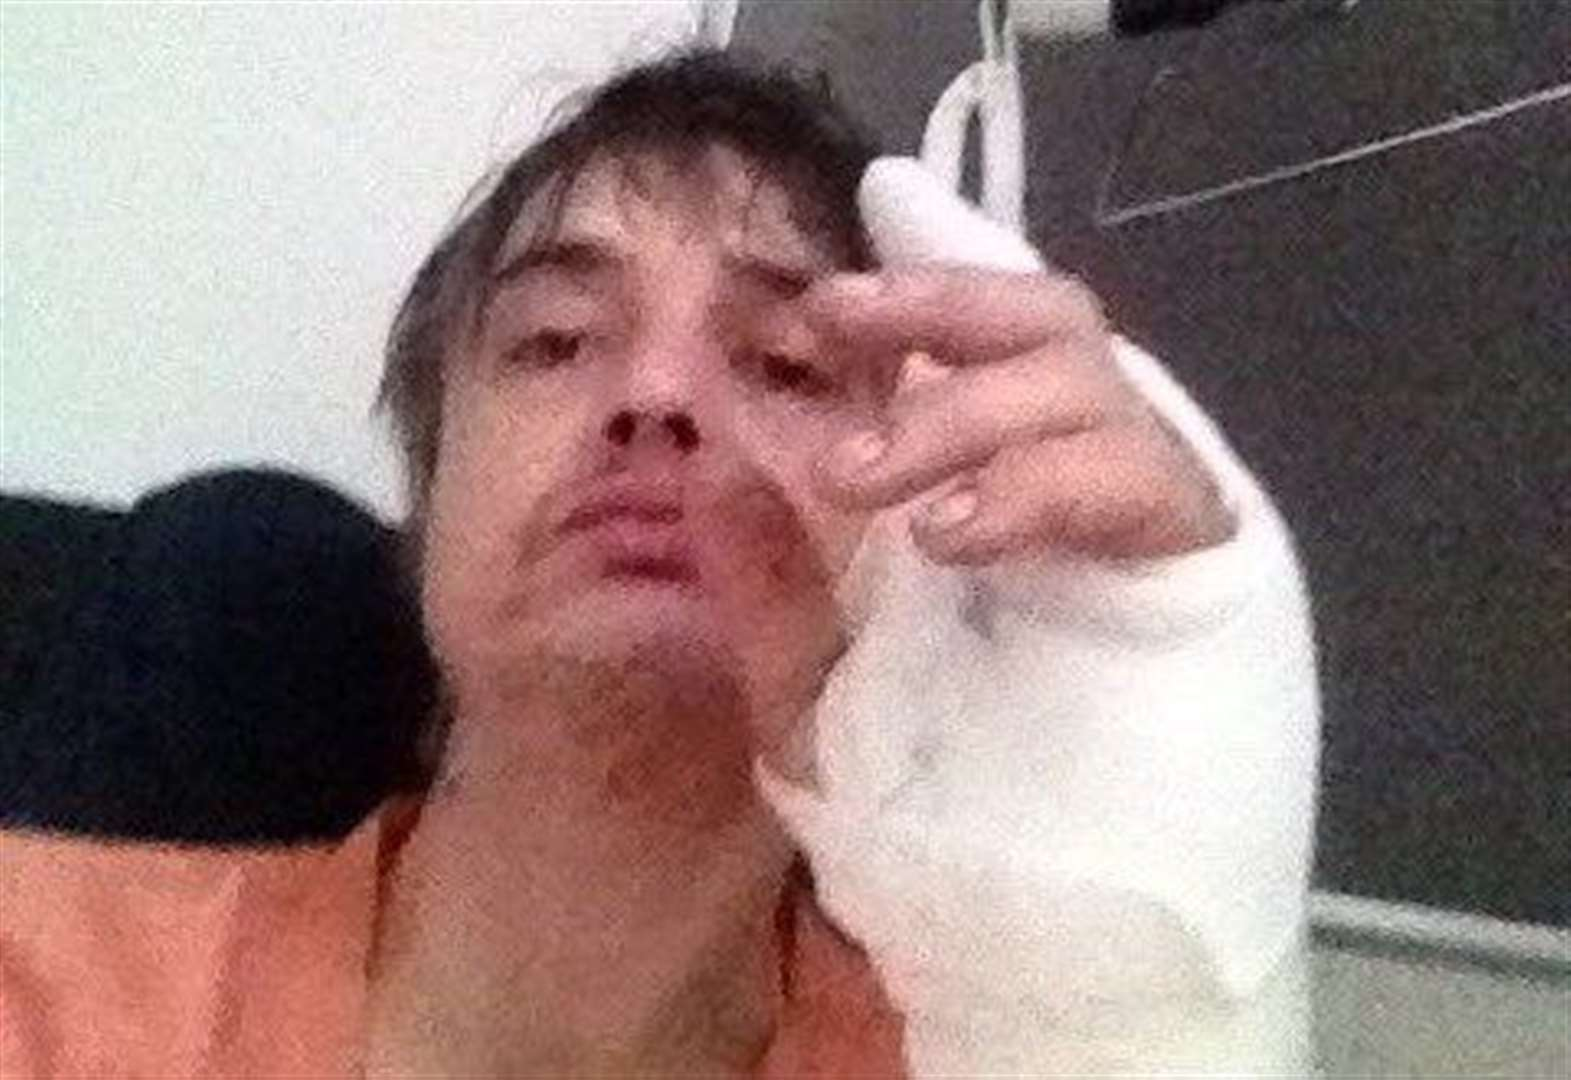 Pete Doherty hospitalised after hedgehog injury